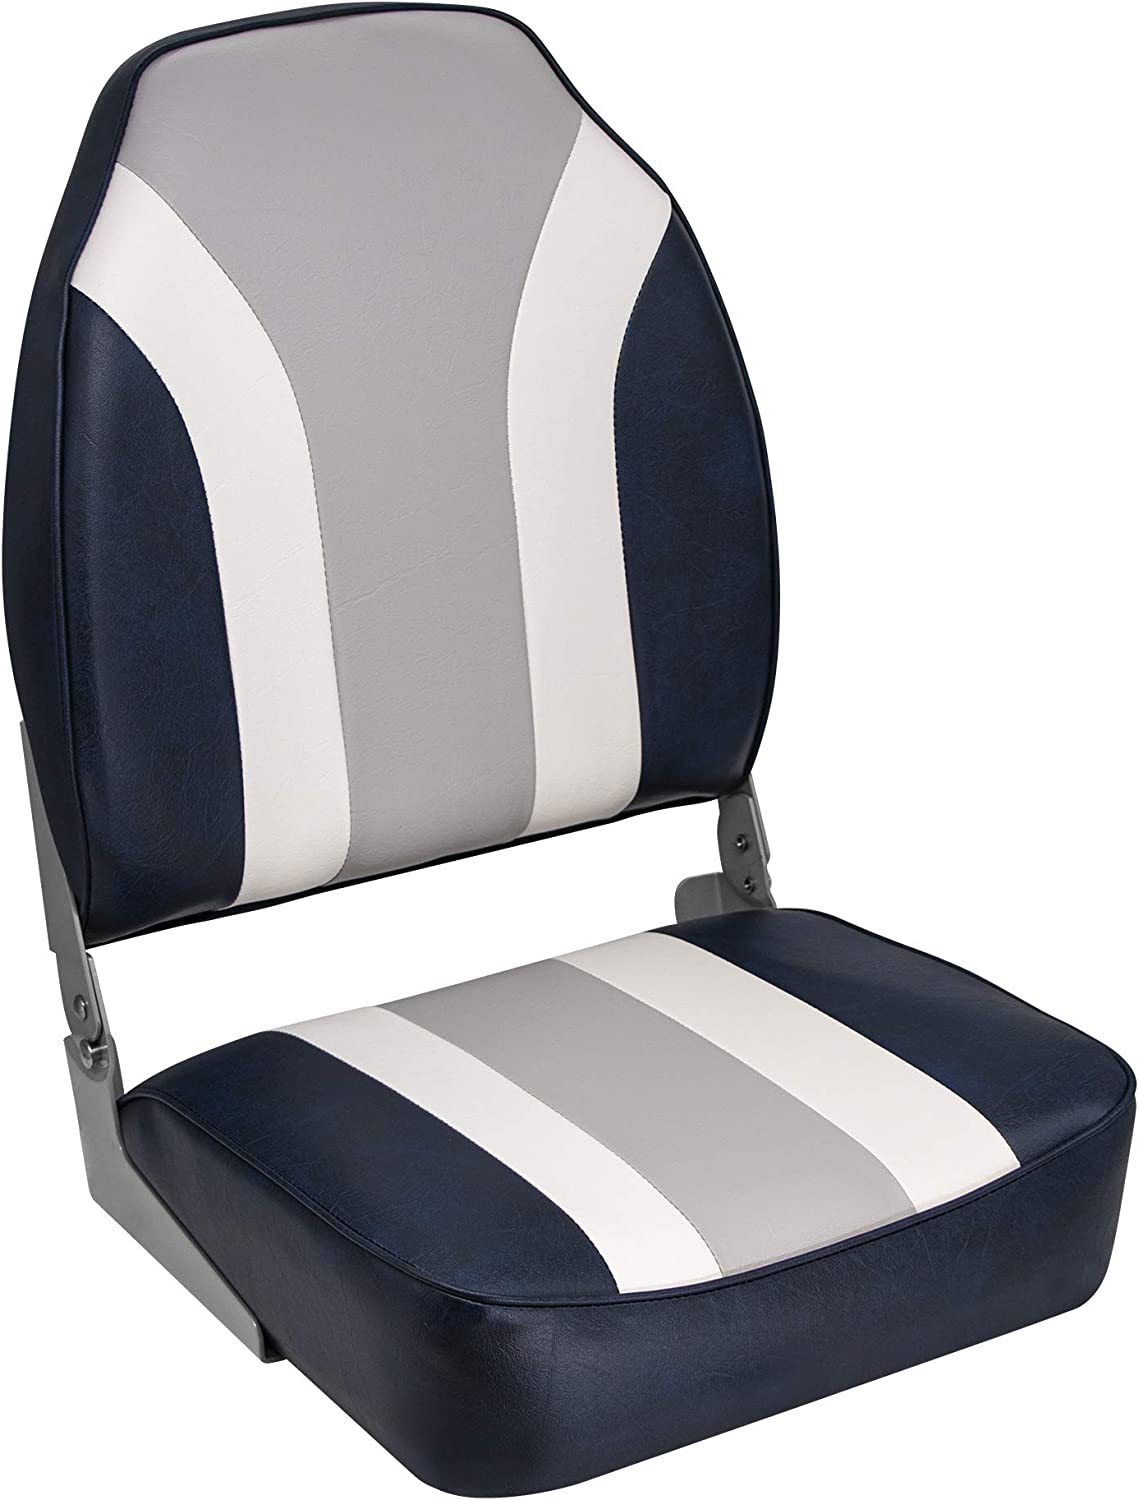 """Boat Seat /"""" Fisherman /"""" Includes Turntable Steering Chair Eddy Anglersitz Boat"""